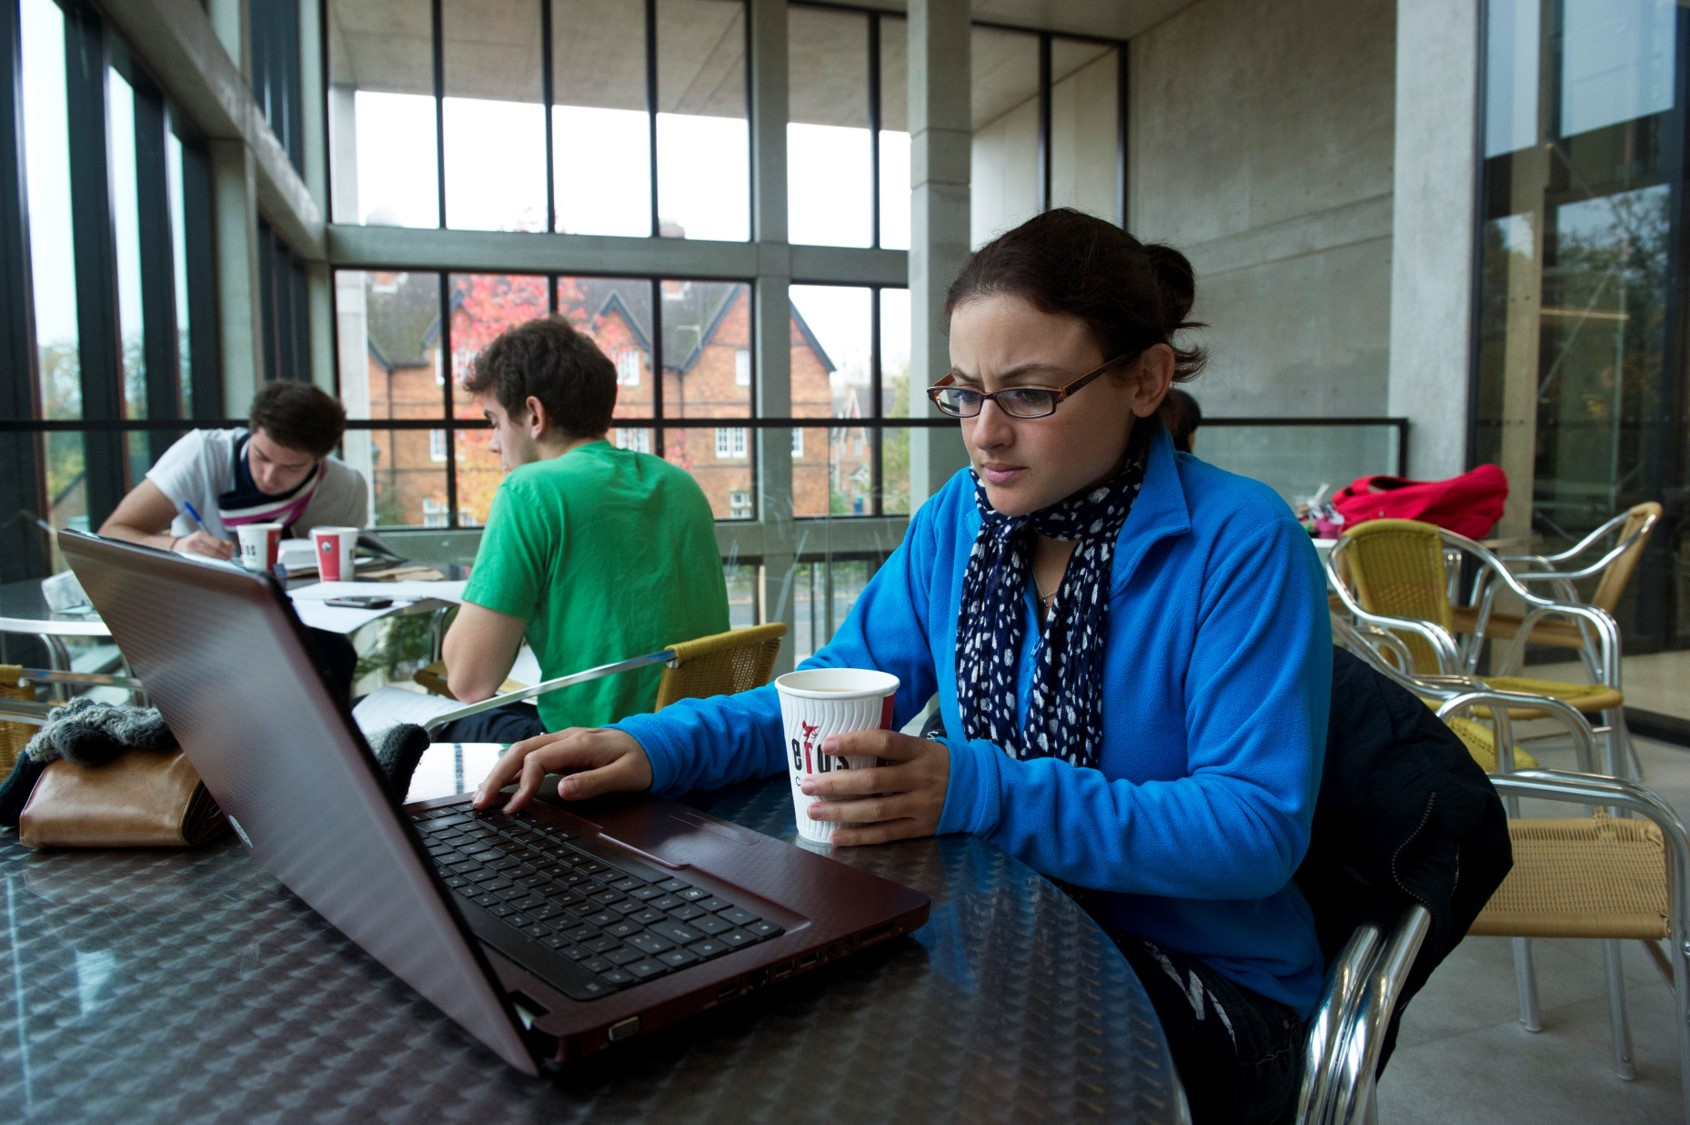 A student working on a laptop, at a metal café table with a paper hot drink cup